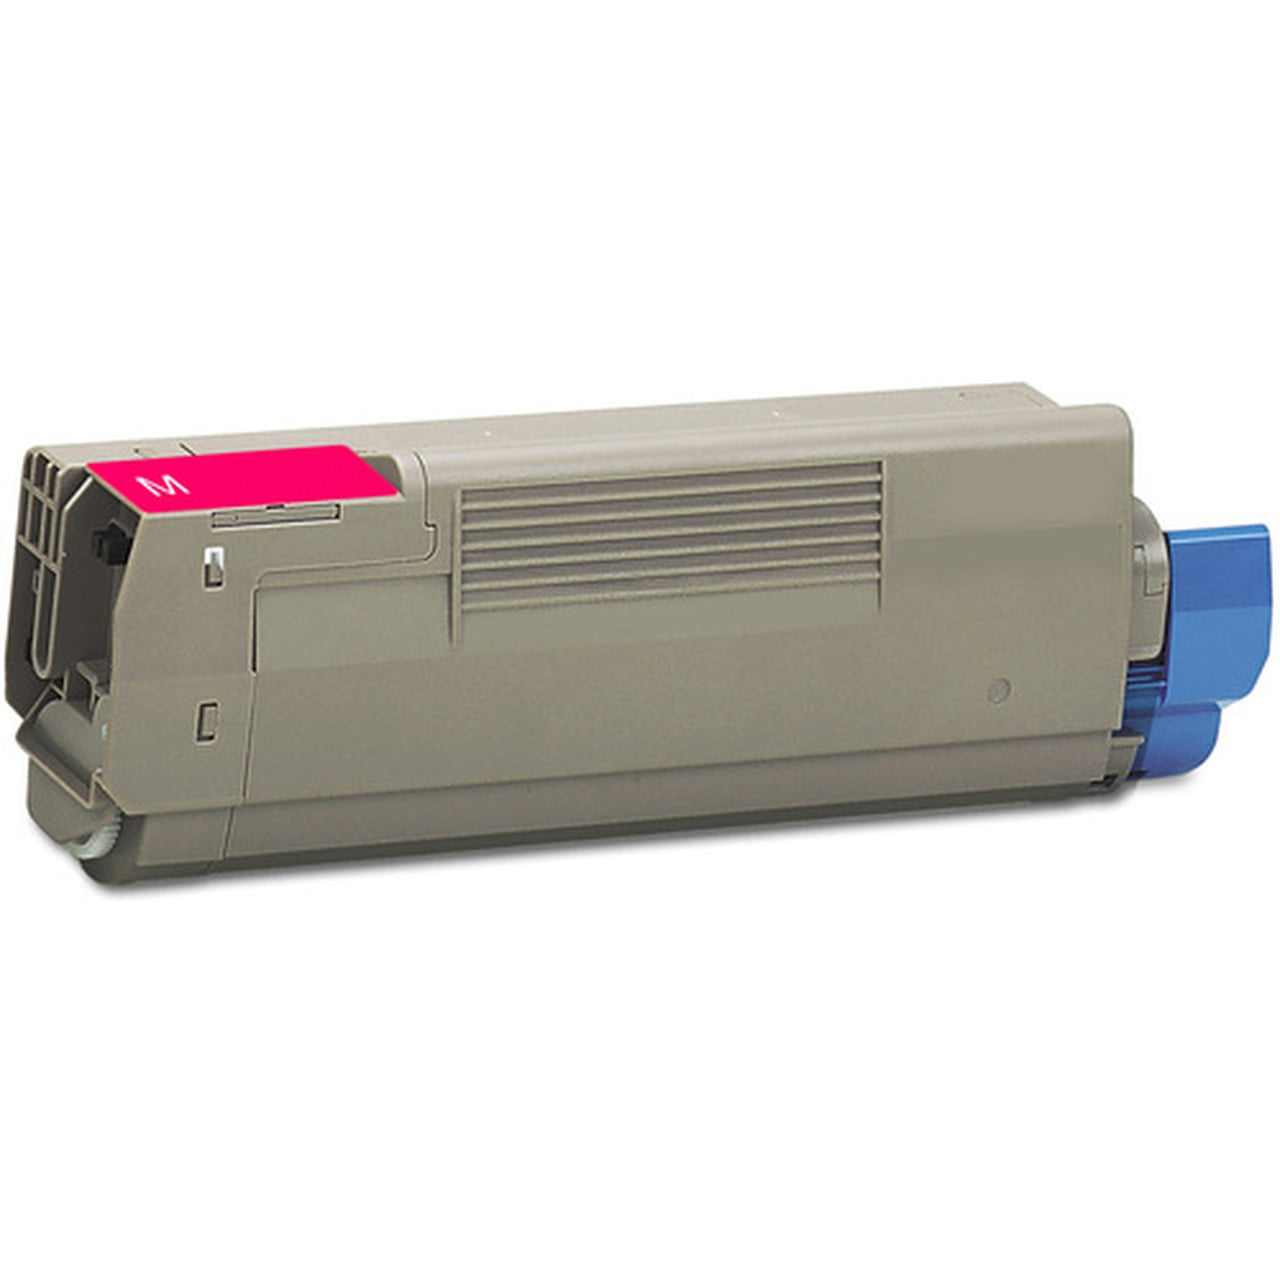 44318602 Toner Cartridge - Okidata Remanufactured (Magenta)